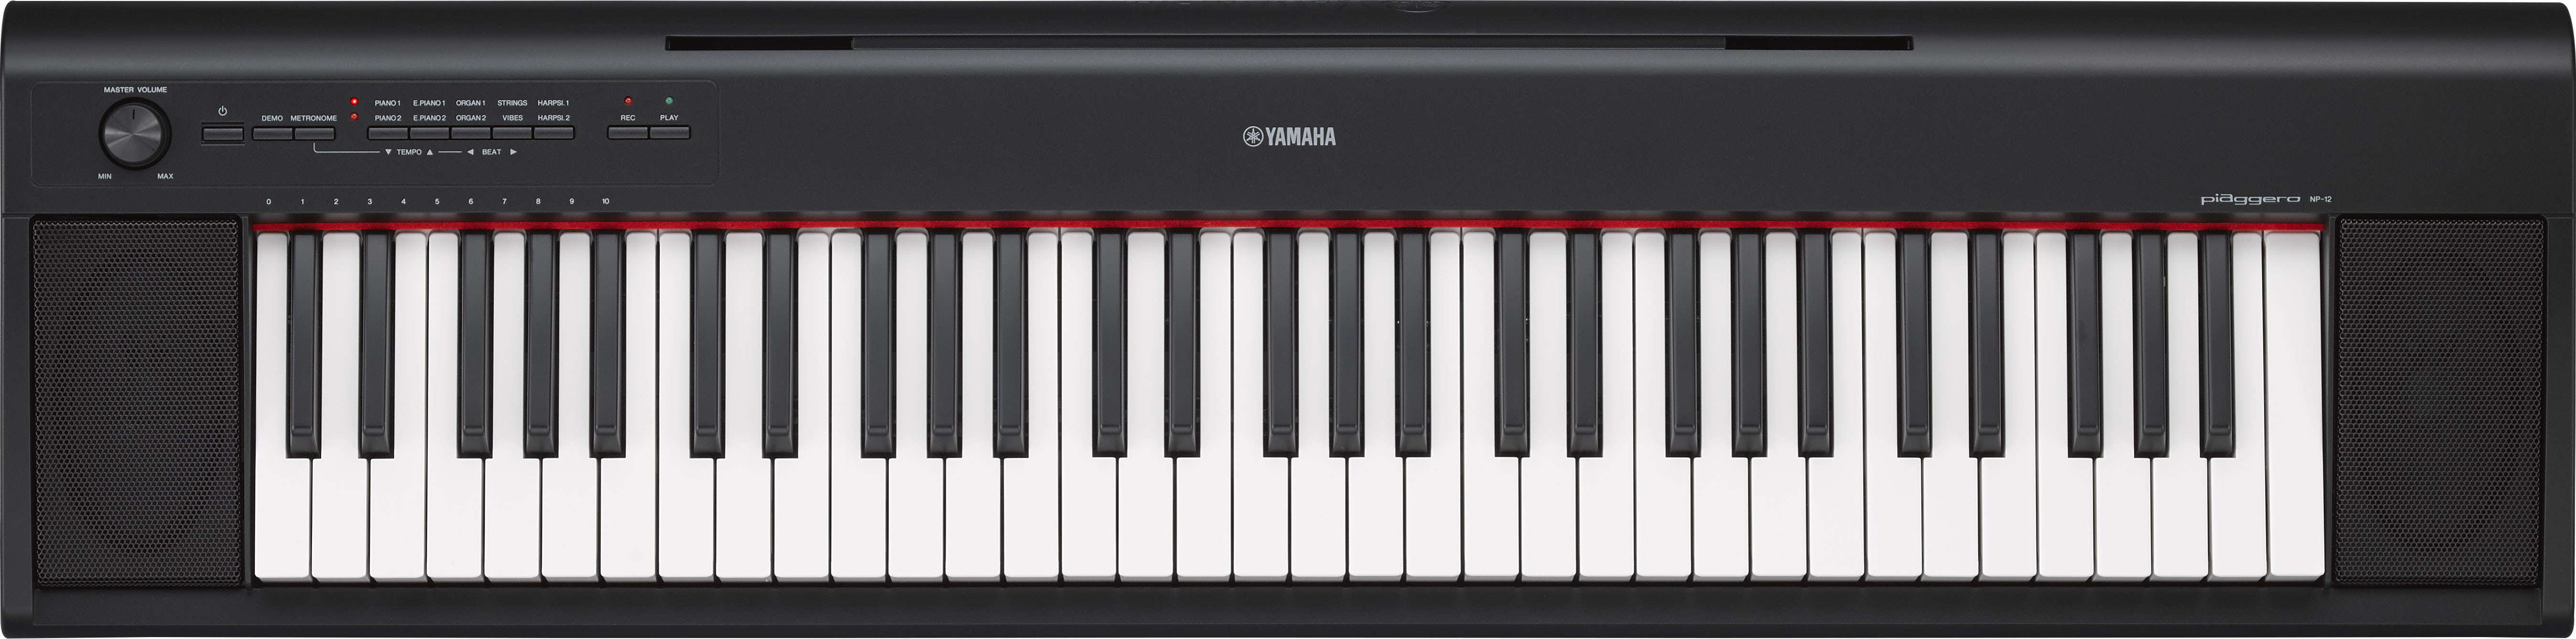 yamaha np12 piaggero pianoforte piano digitale 61 tasti